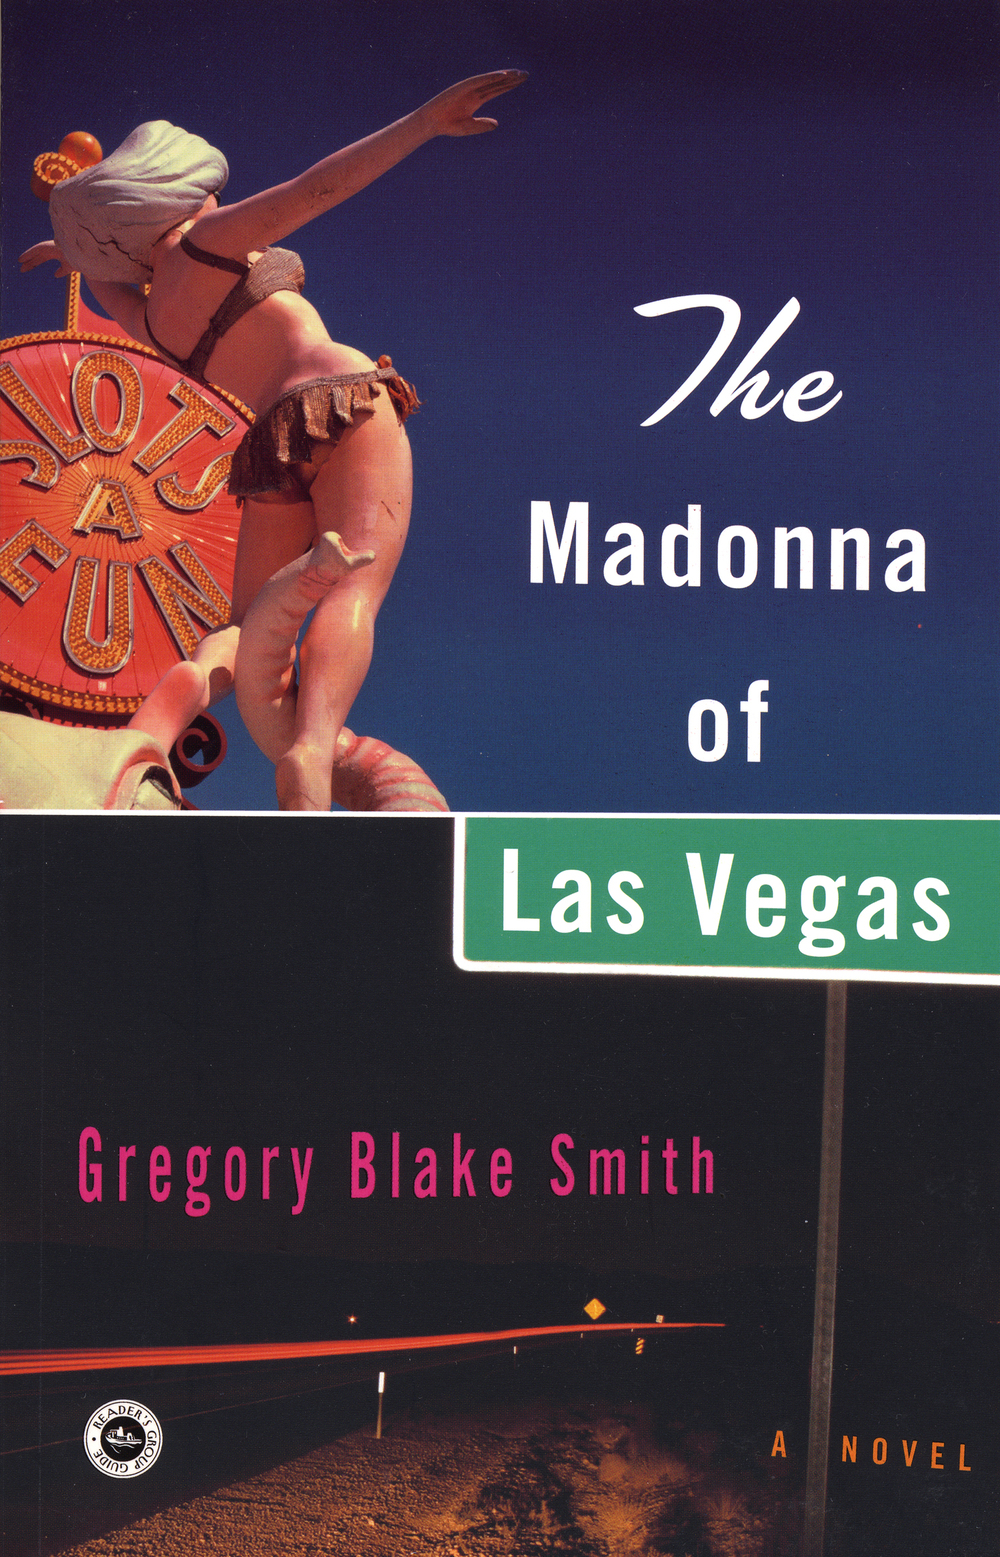 THE-MADONNA-OF-LAS-VEGAS-ss6.jpg